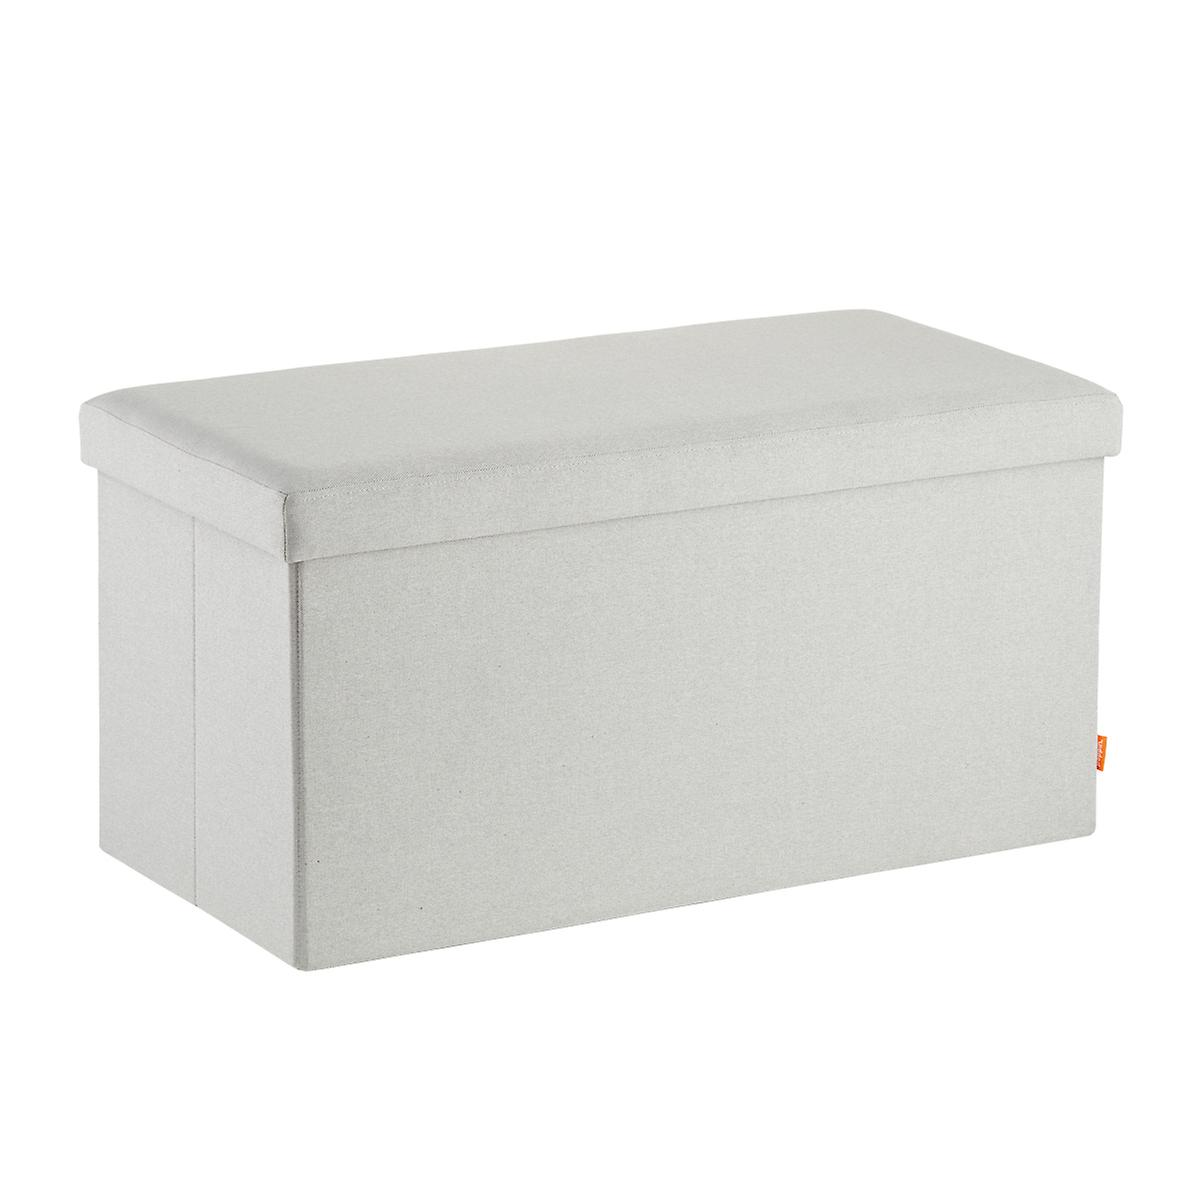 Light Grey Poppin Box Bench